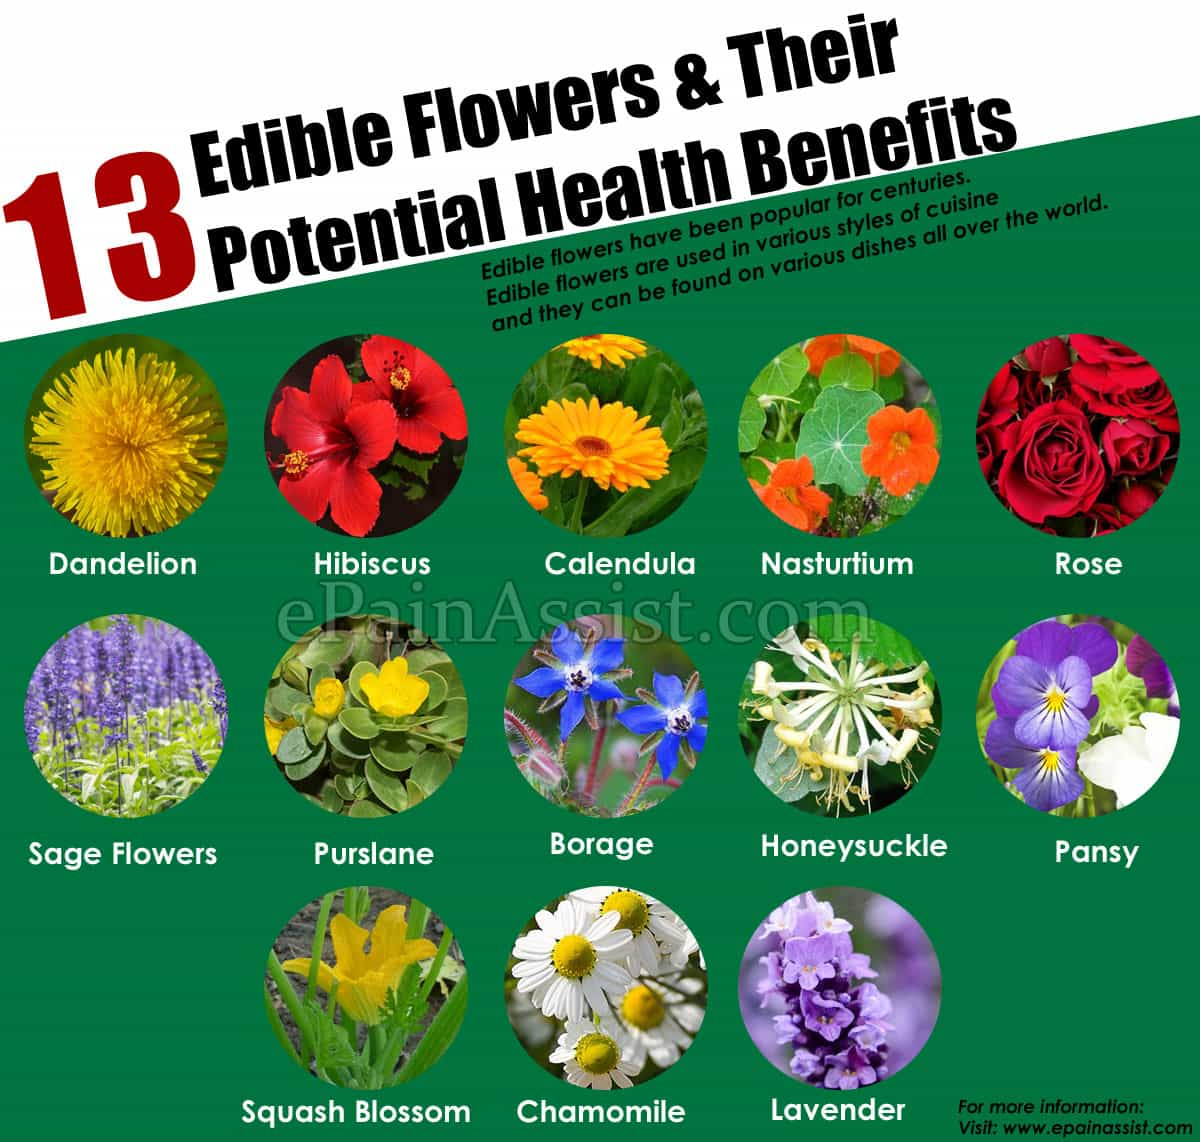 13 Edible Flowers & Their Potential Health Benefits